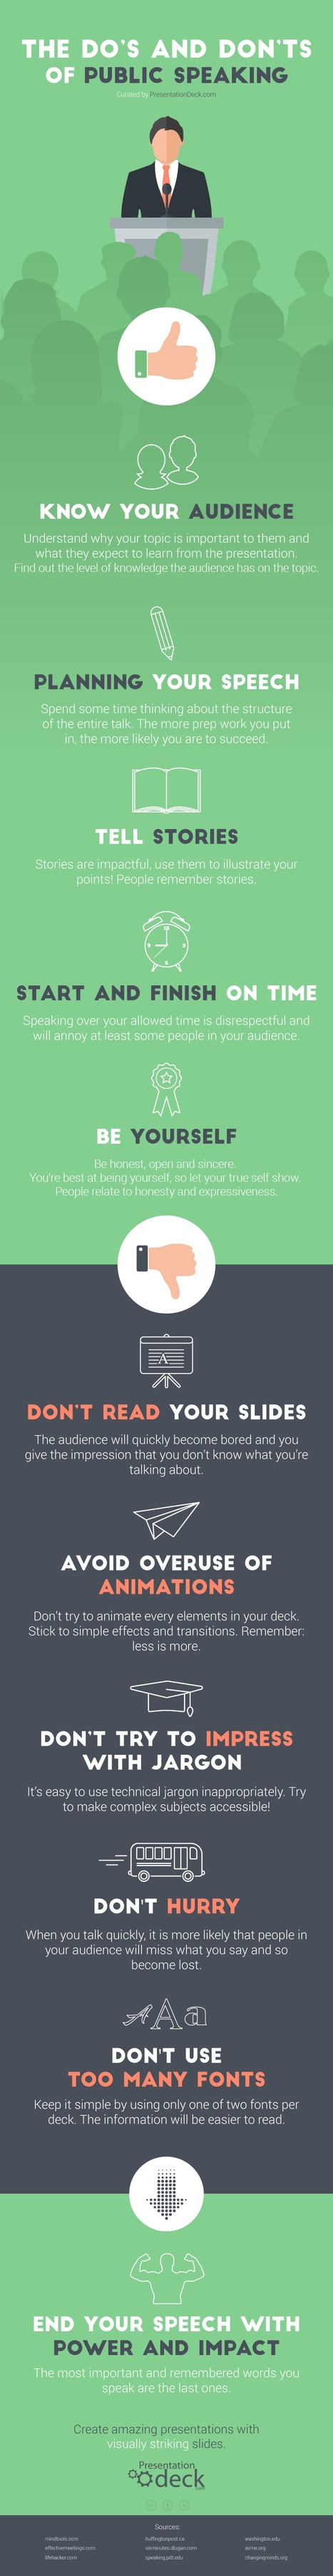 The Do's and Don'ts of Public Speaking Infographic - e-Learning Infographics | Learning At Work | Scoop.it